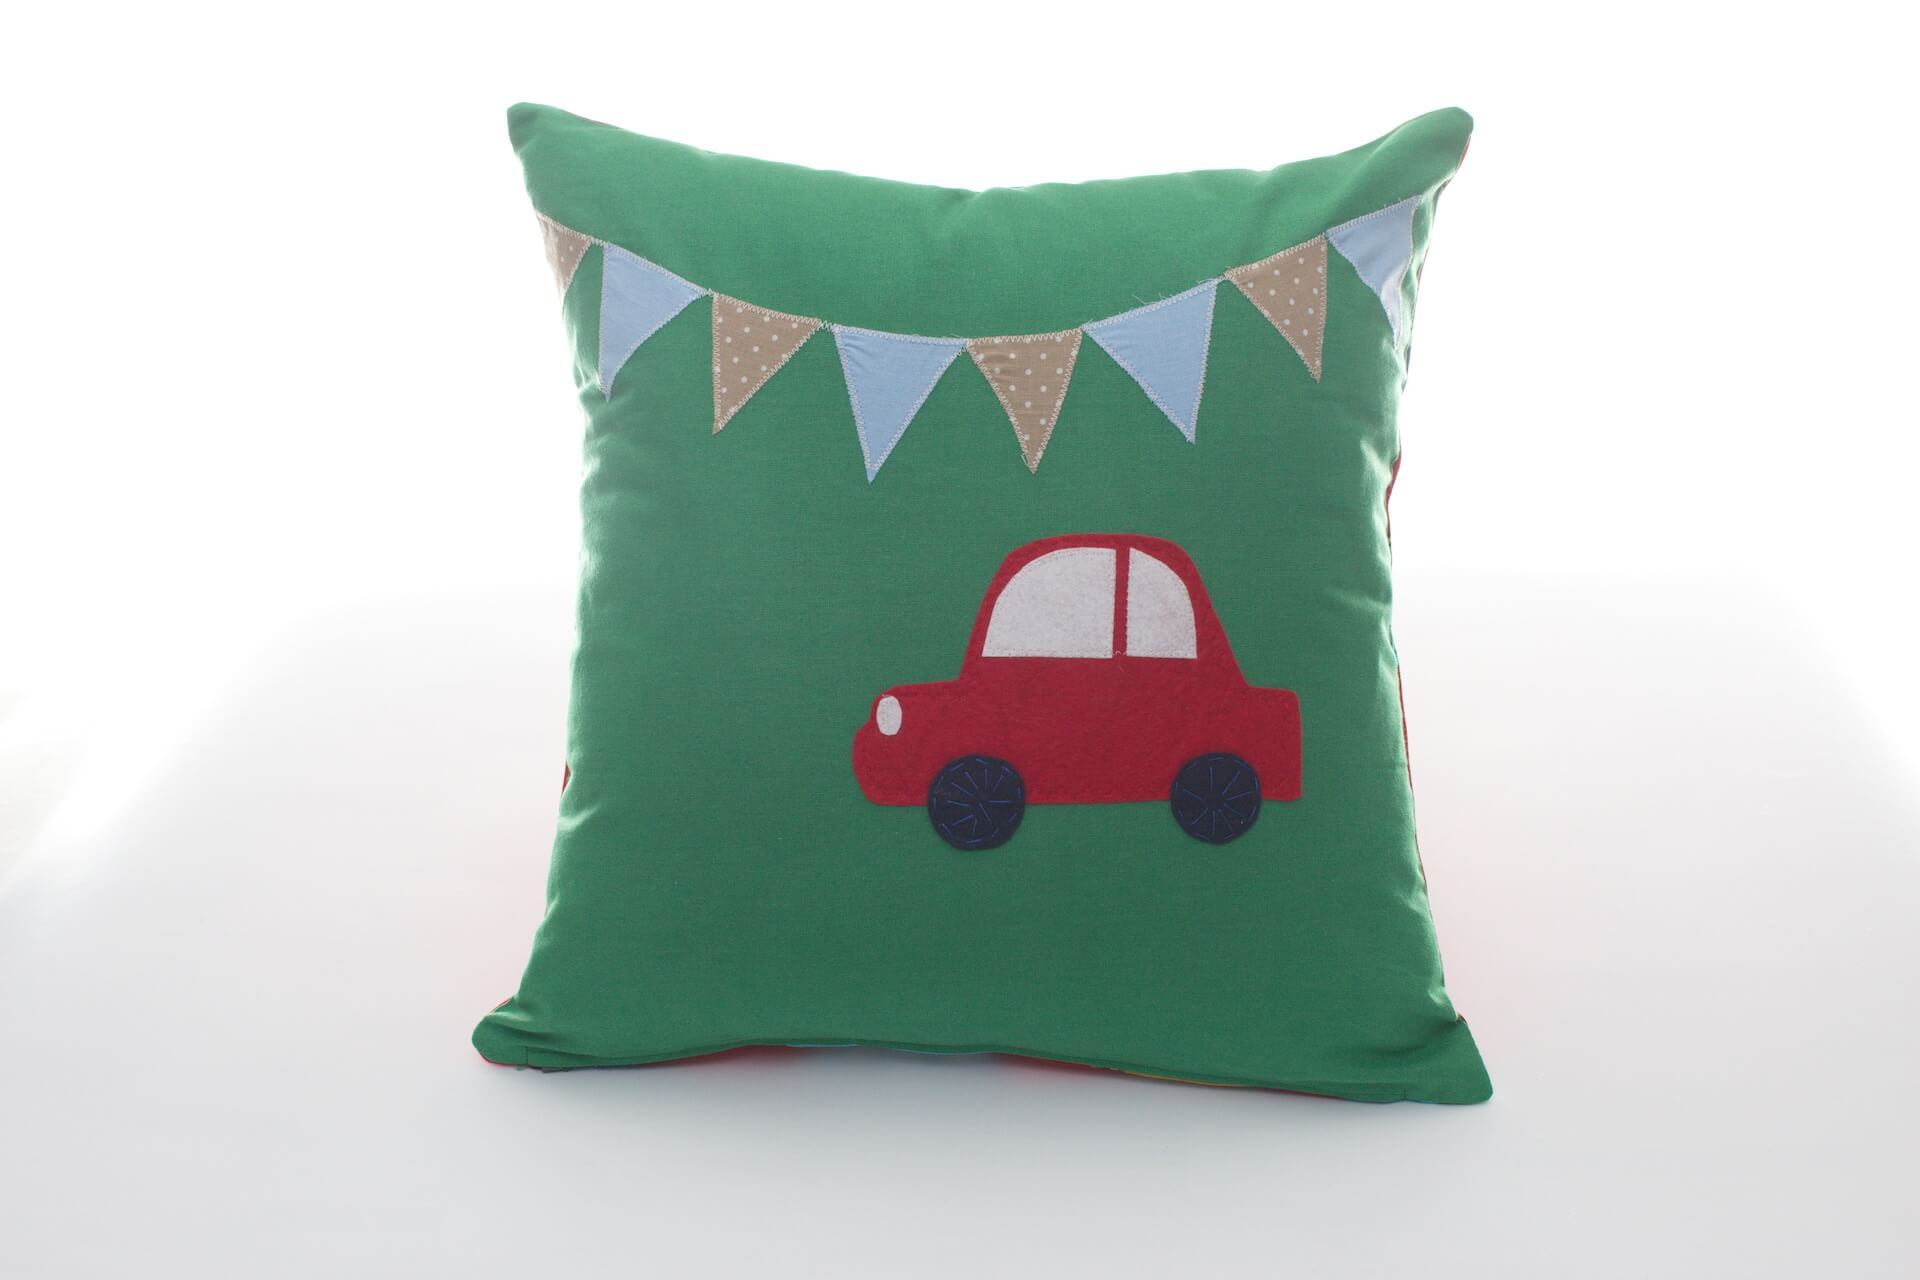 Handmade decorative pillow with red car